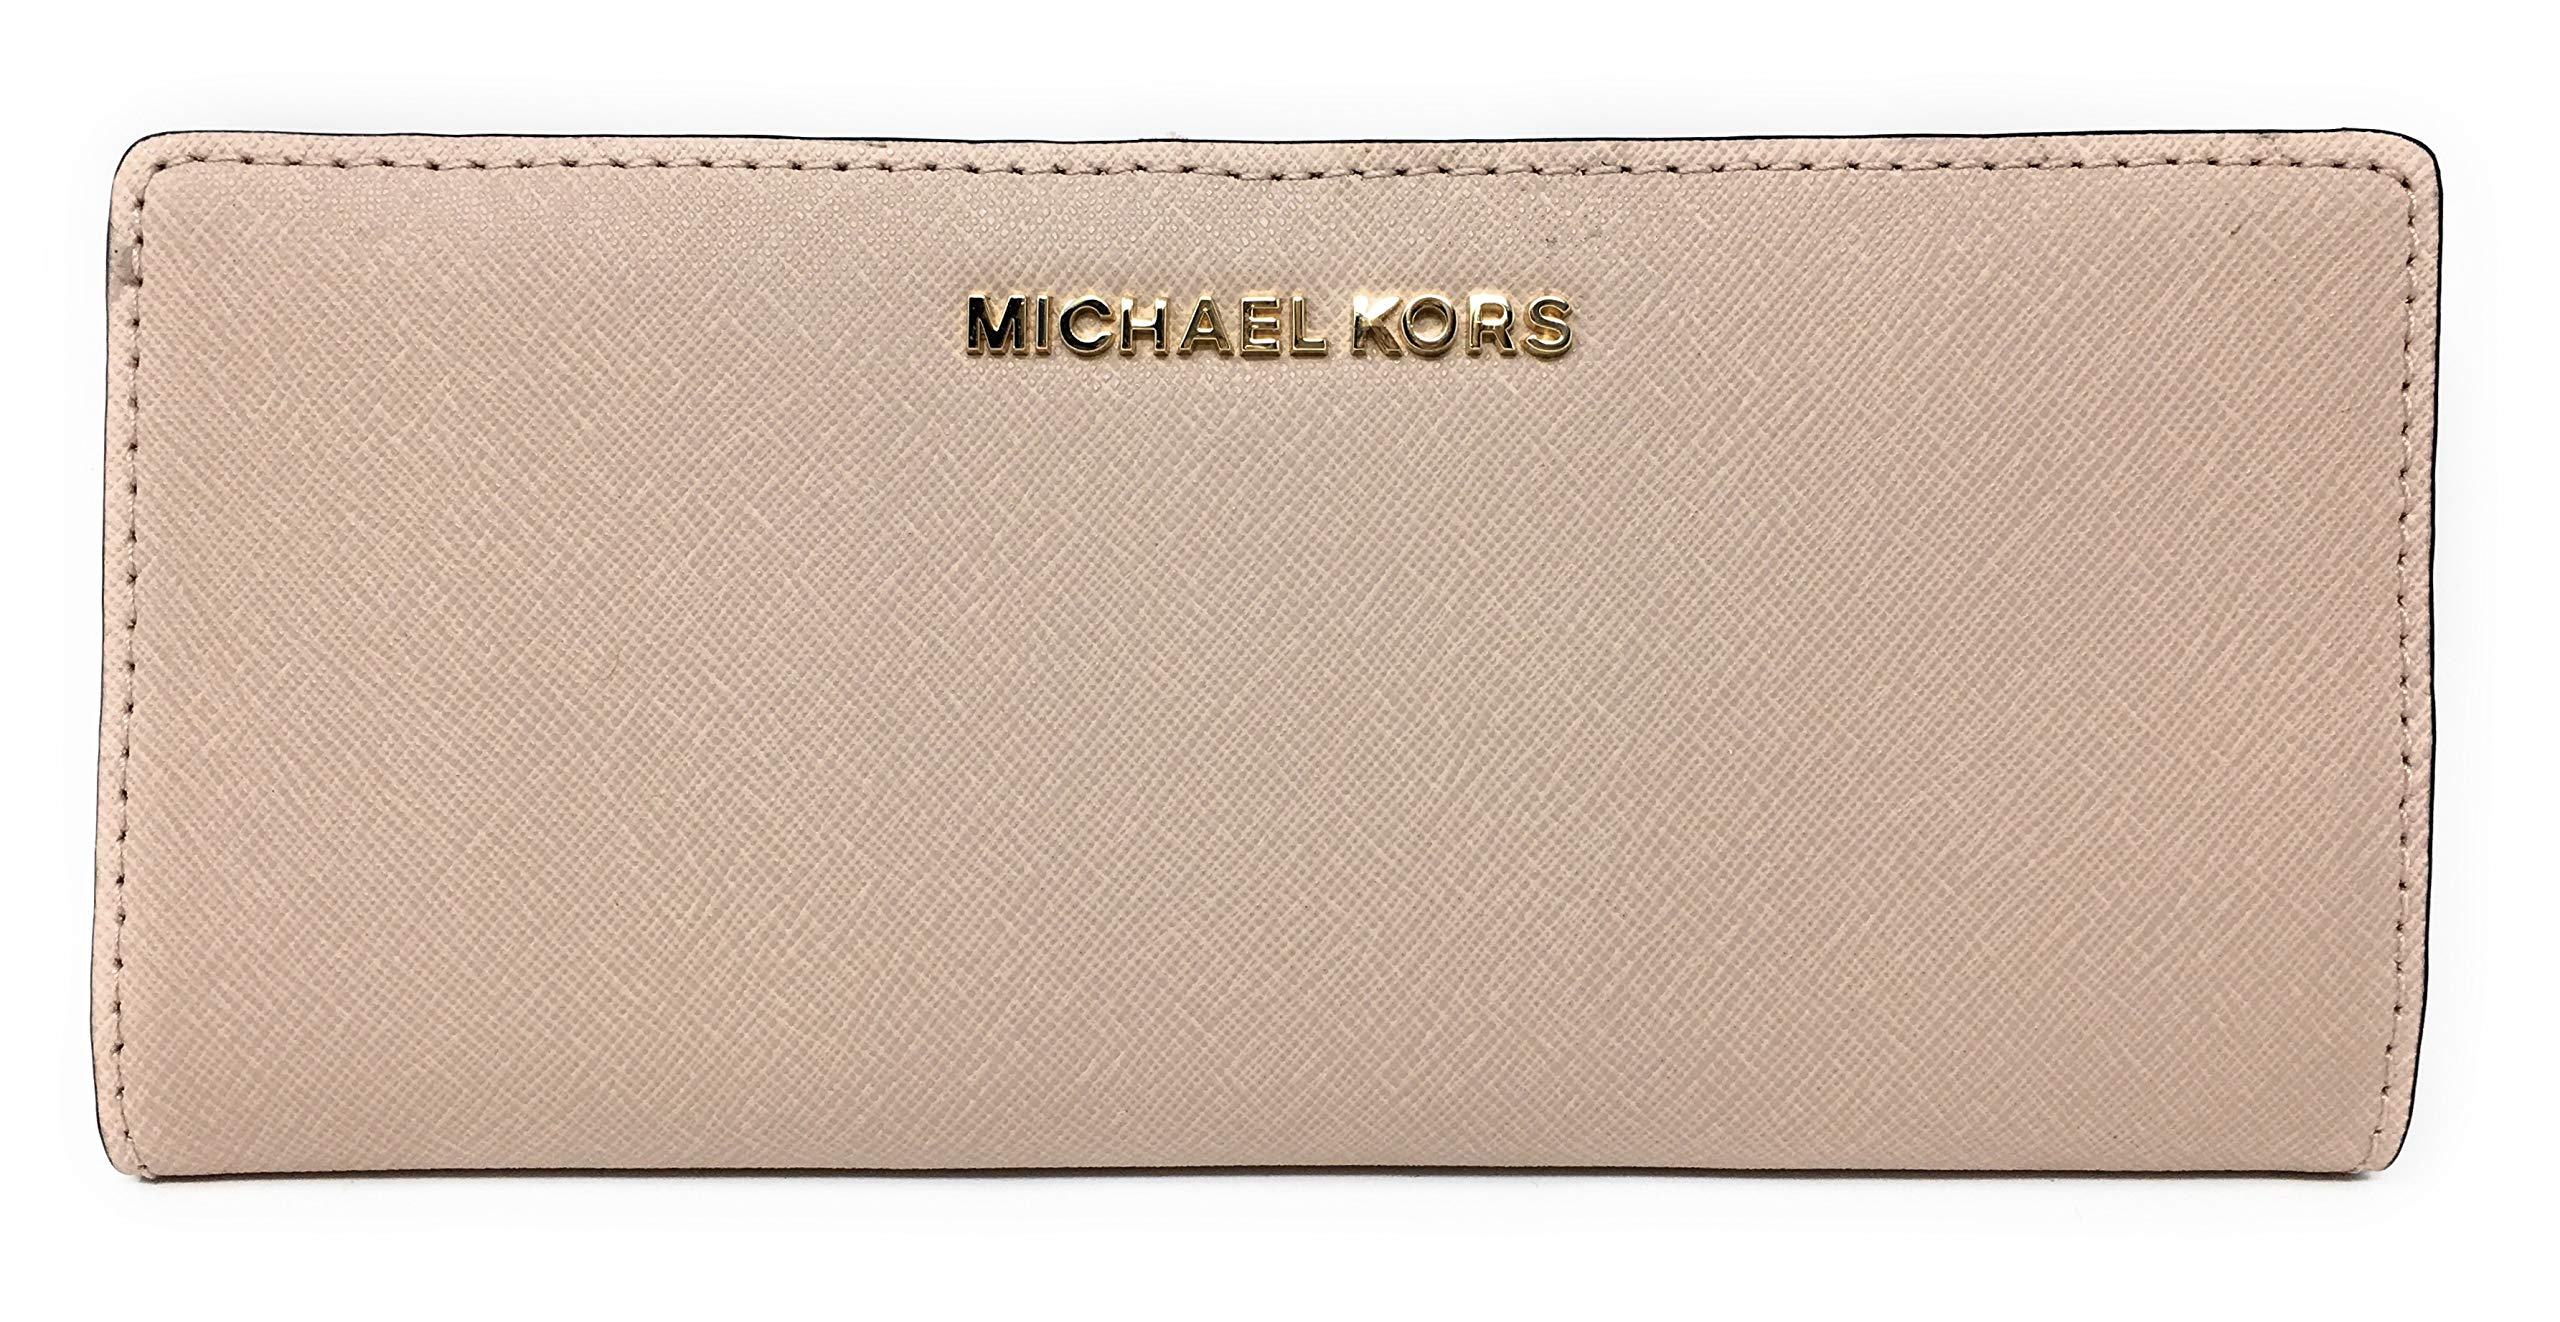 Michael Kors Jet Set Travel Flat Slim Bifold Saffiano Leather Wallet (Ballet)